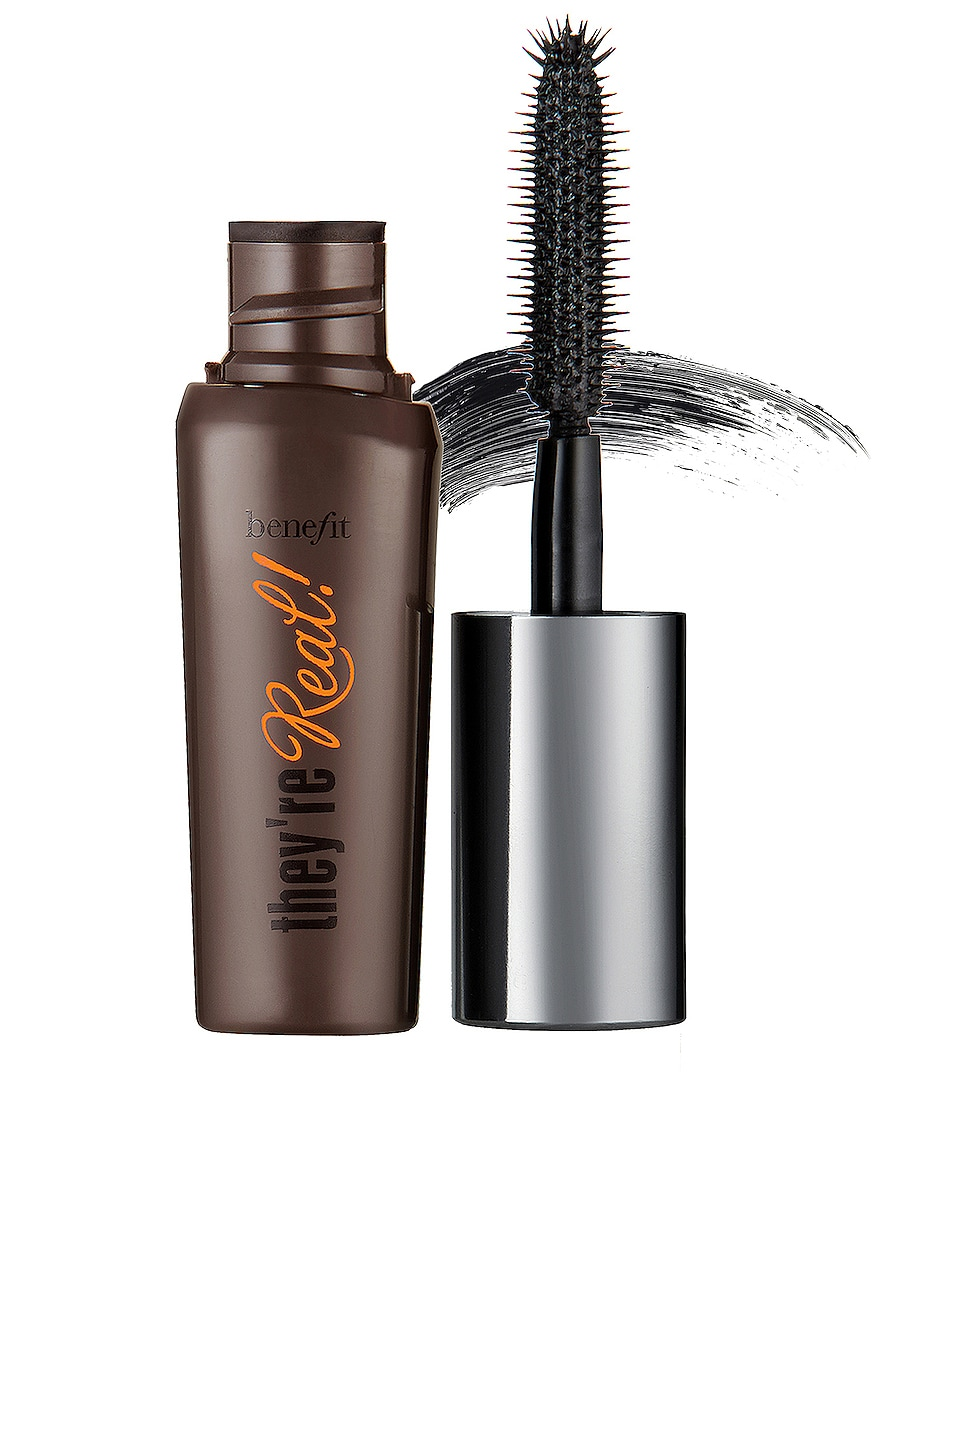 Benefit Cosmetics Mini They're Real! Lengthening Mascara in Black